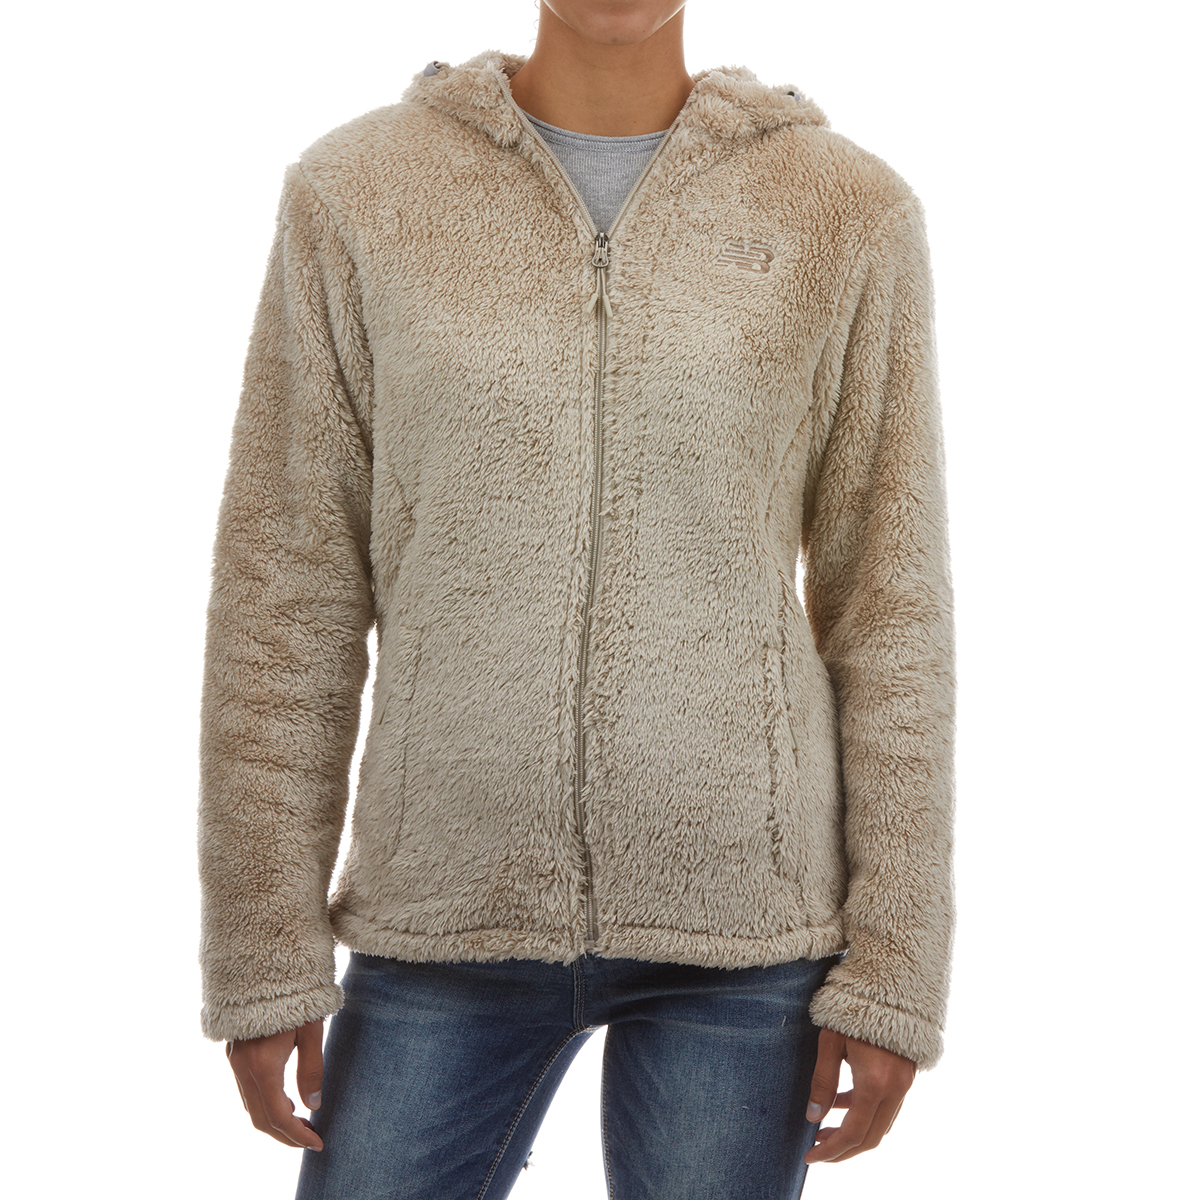 New Balance Women's Full Zip Sherpa Jacket With Hood - White, S